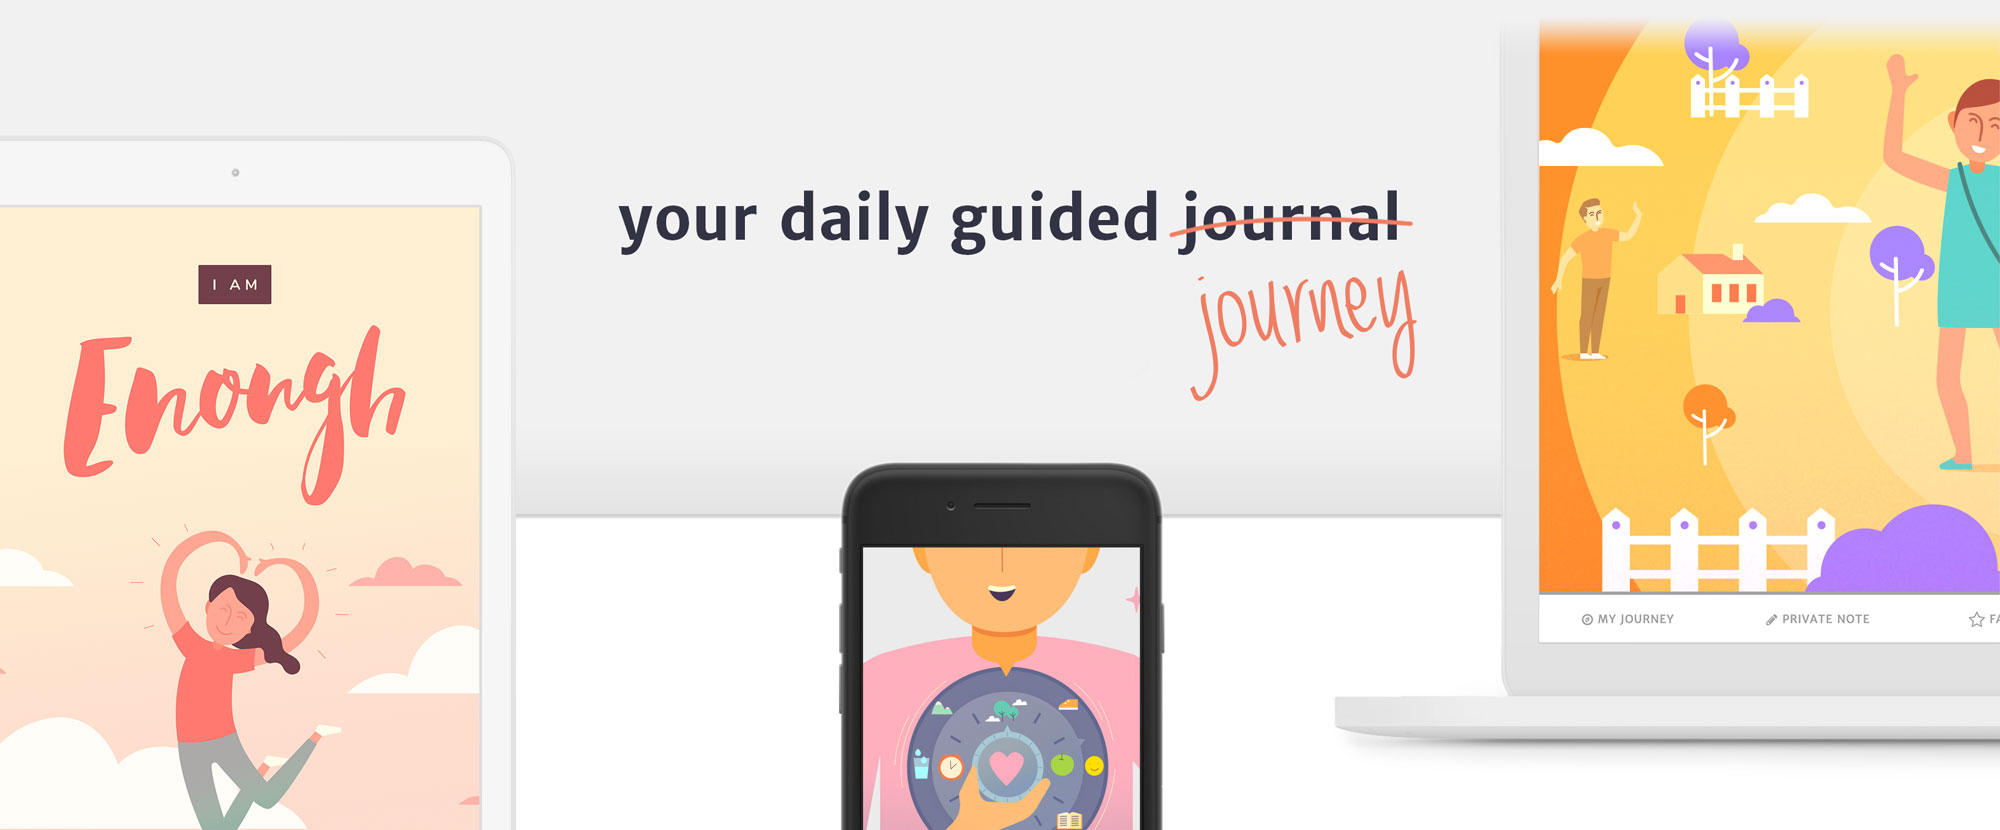 Daily Guided Journey